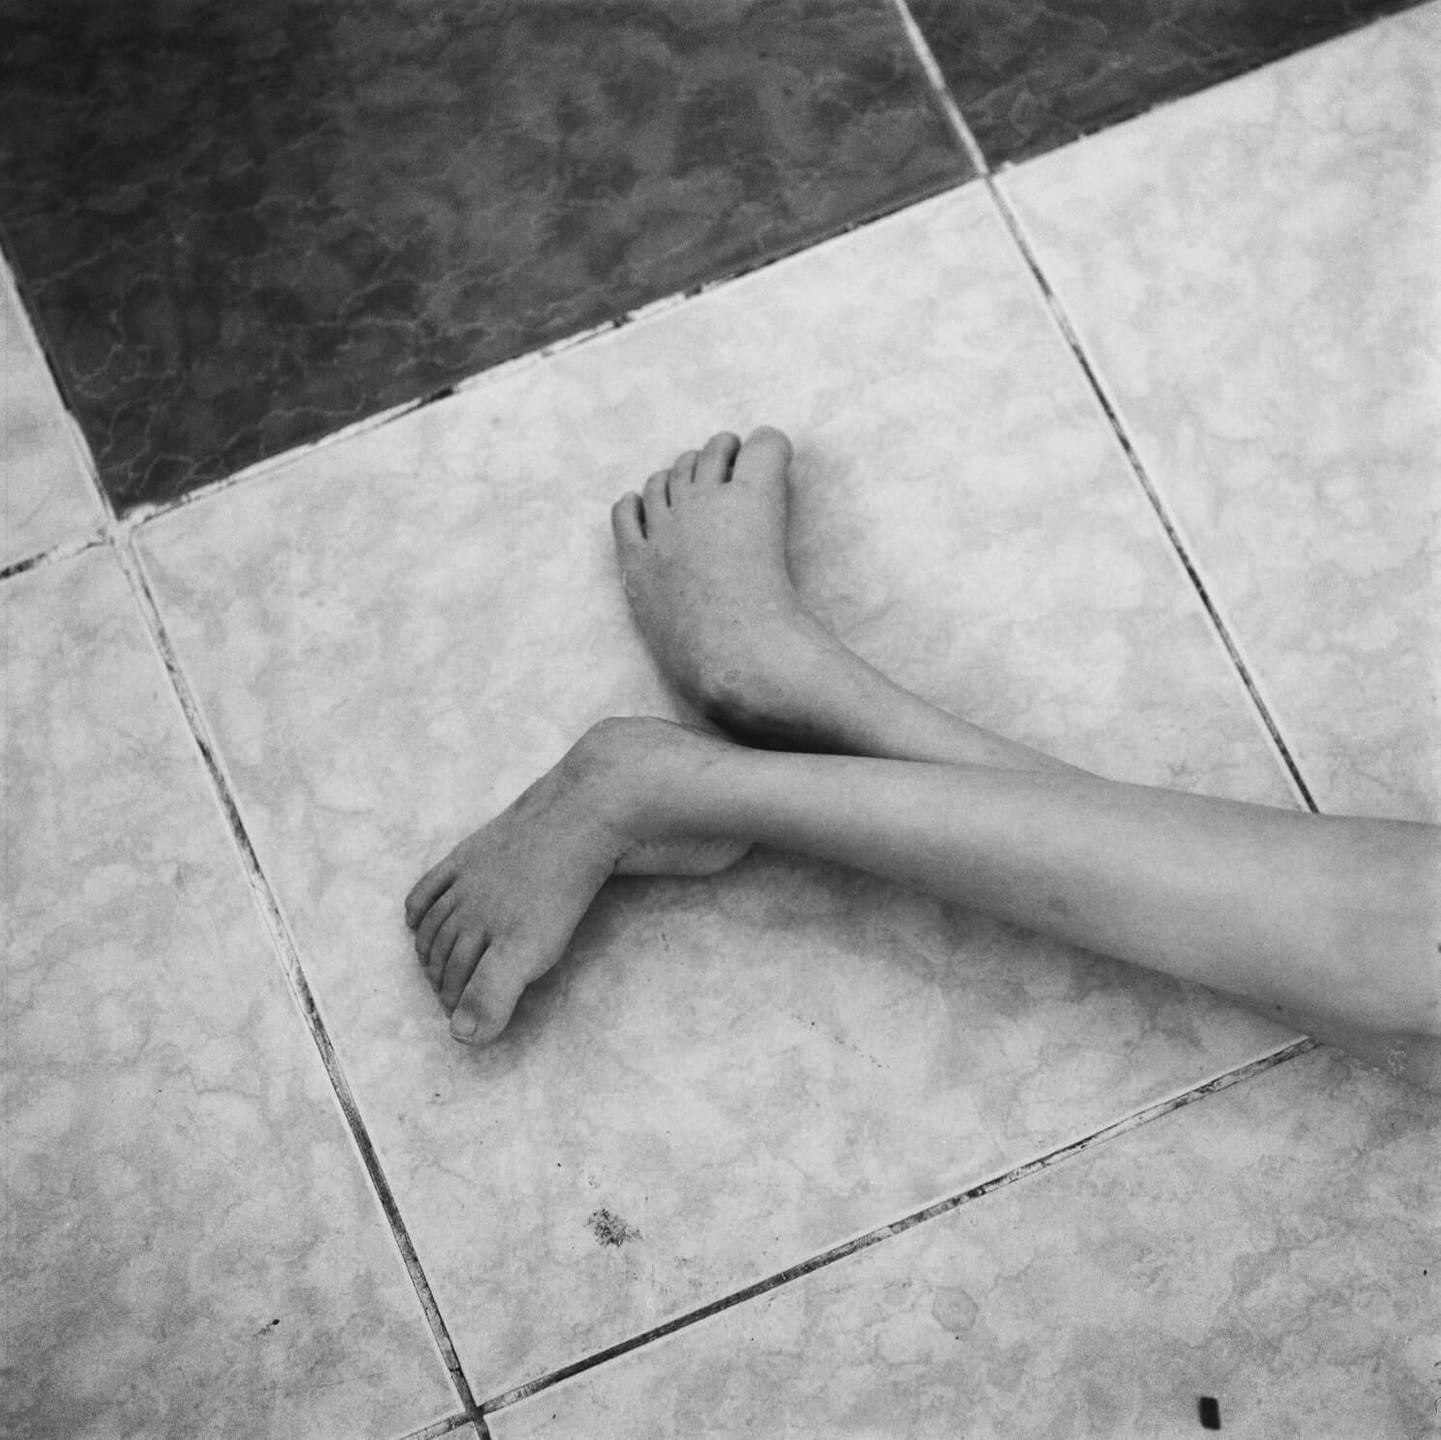 A child's twisted and contorted feet against a tile backdrop.